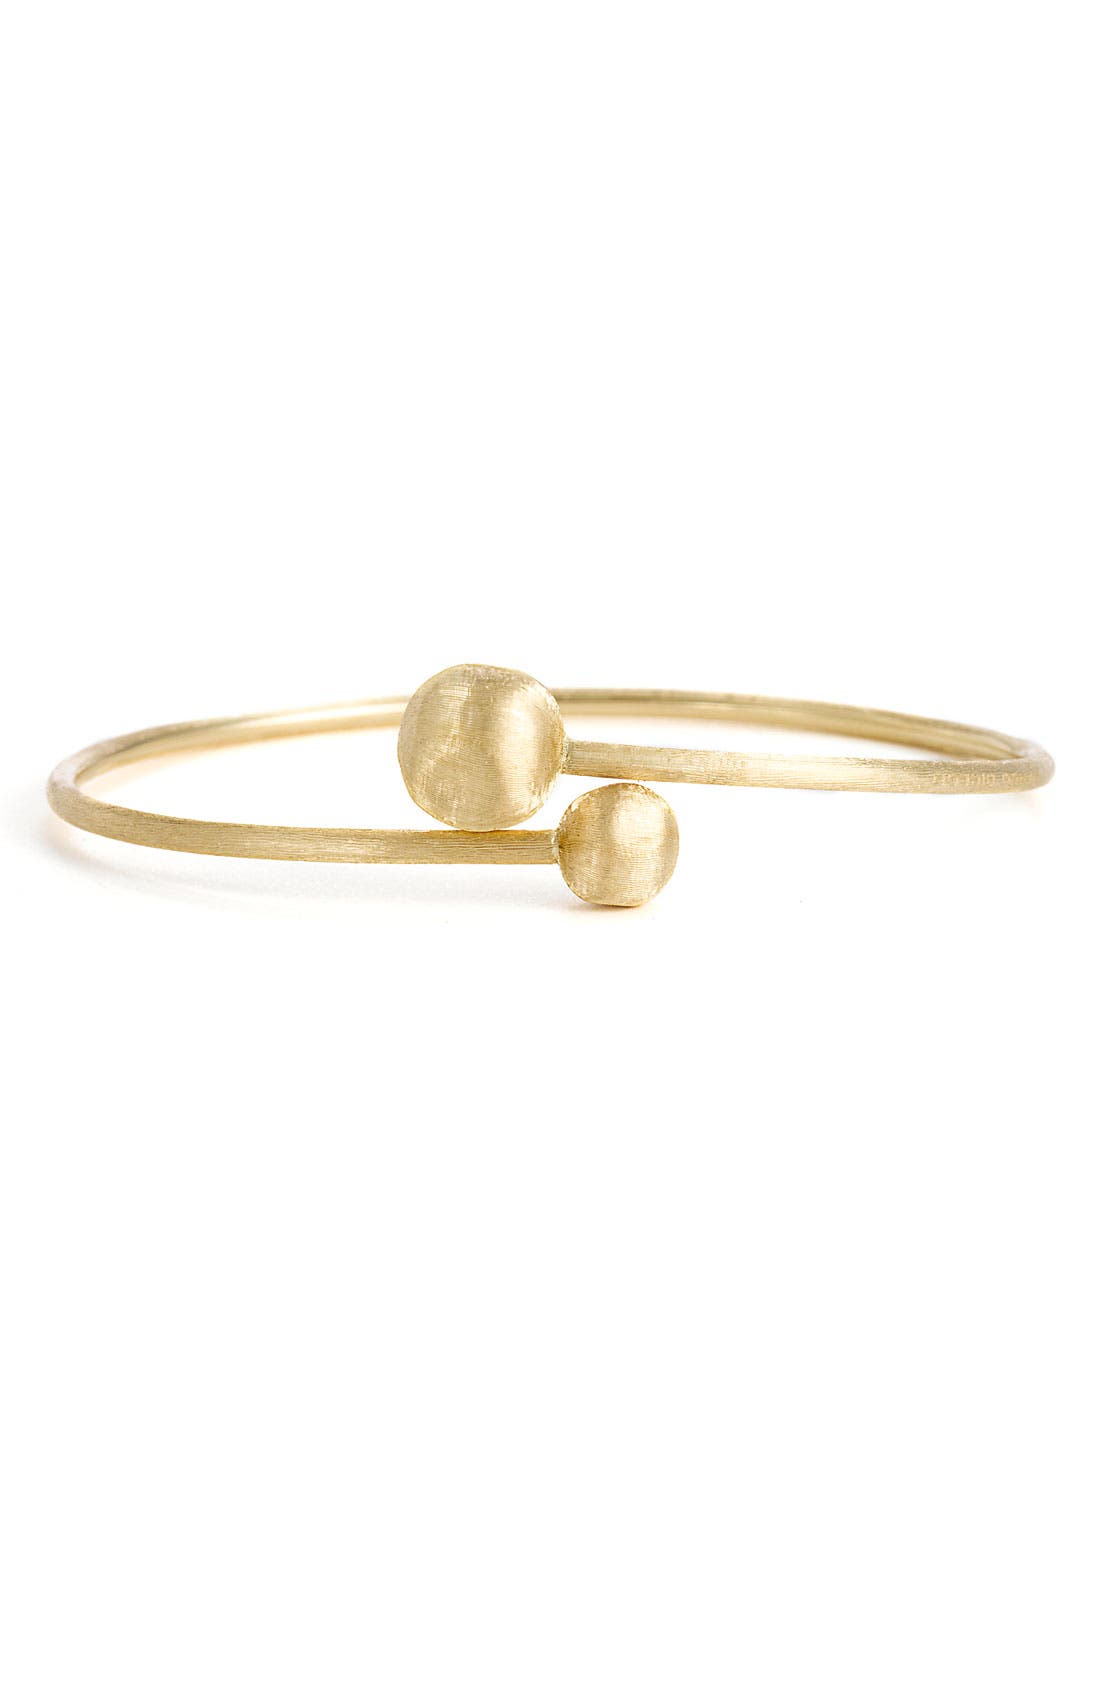 Main Image - Marco Bicego 'Africa Gold - Small Hugging' Bangle